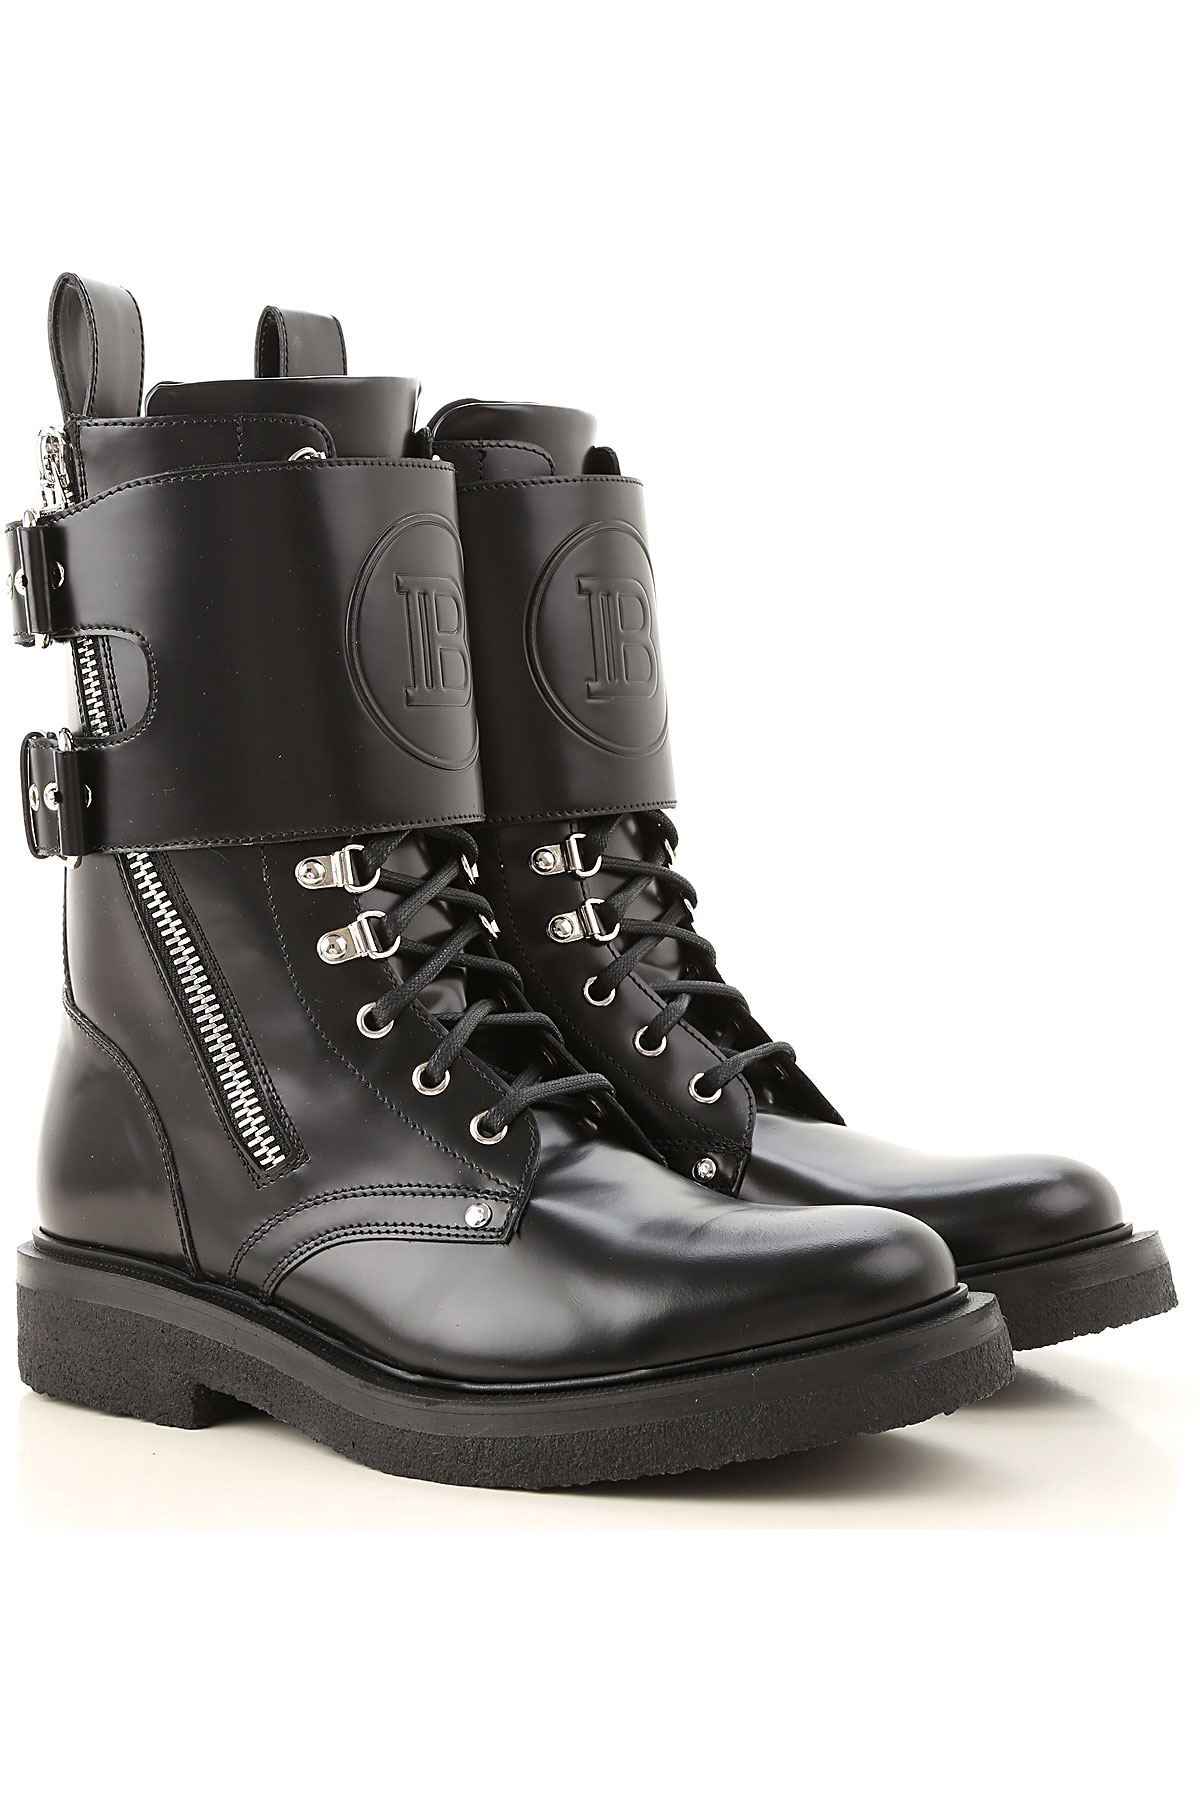 Balmain Boots for Men, Booties On Sale, Black, Leather, 2019, 7.5 8 9